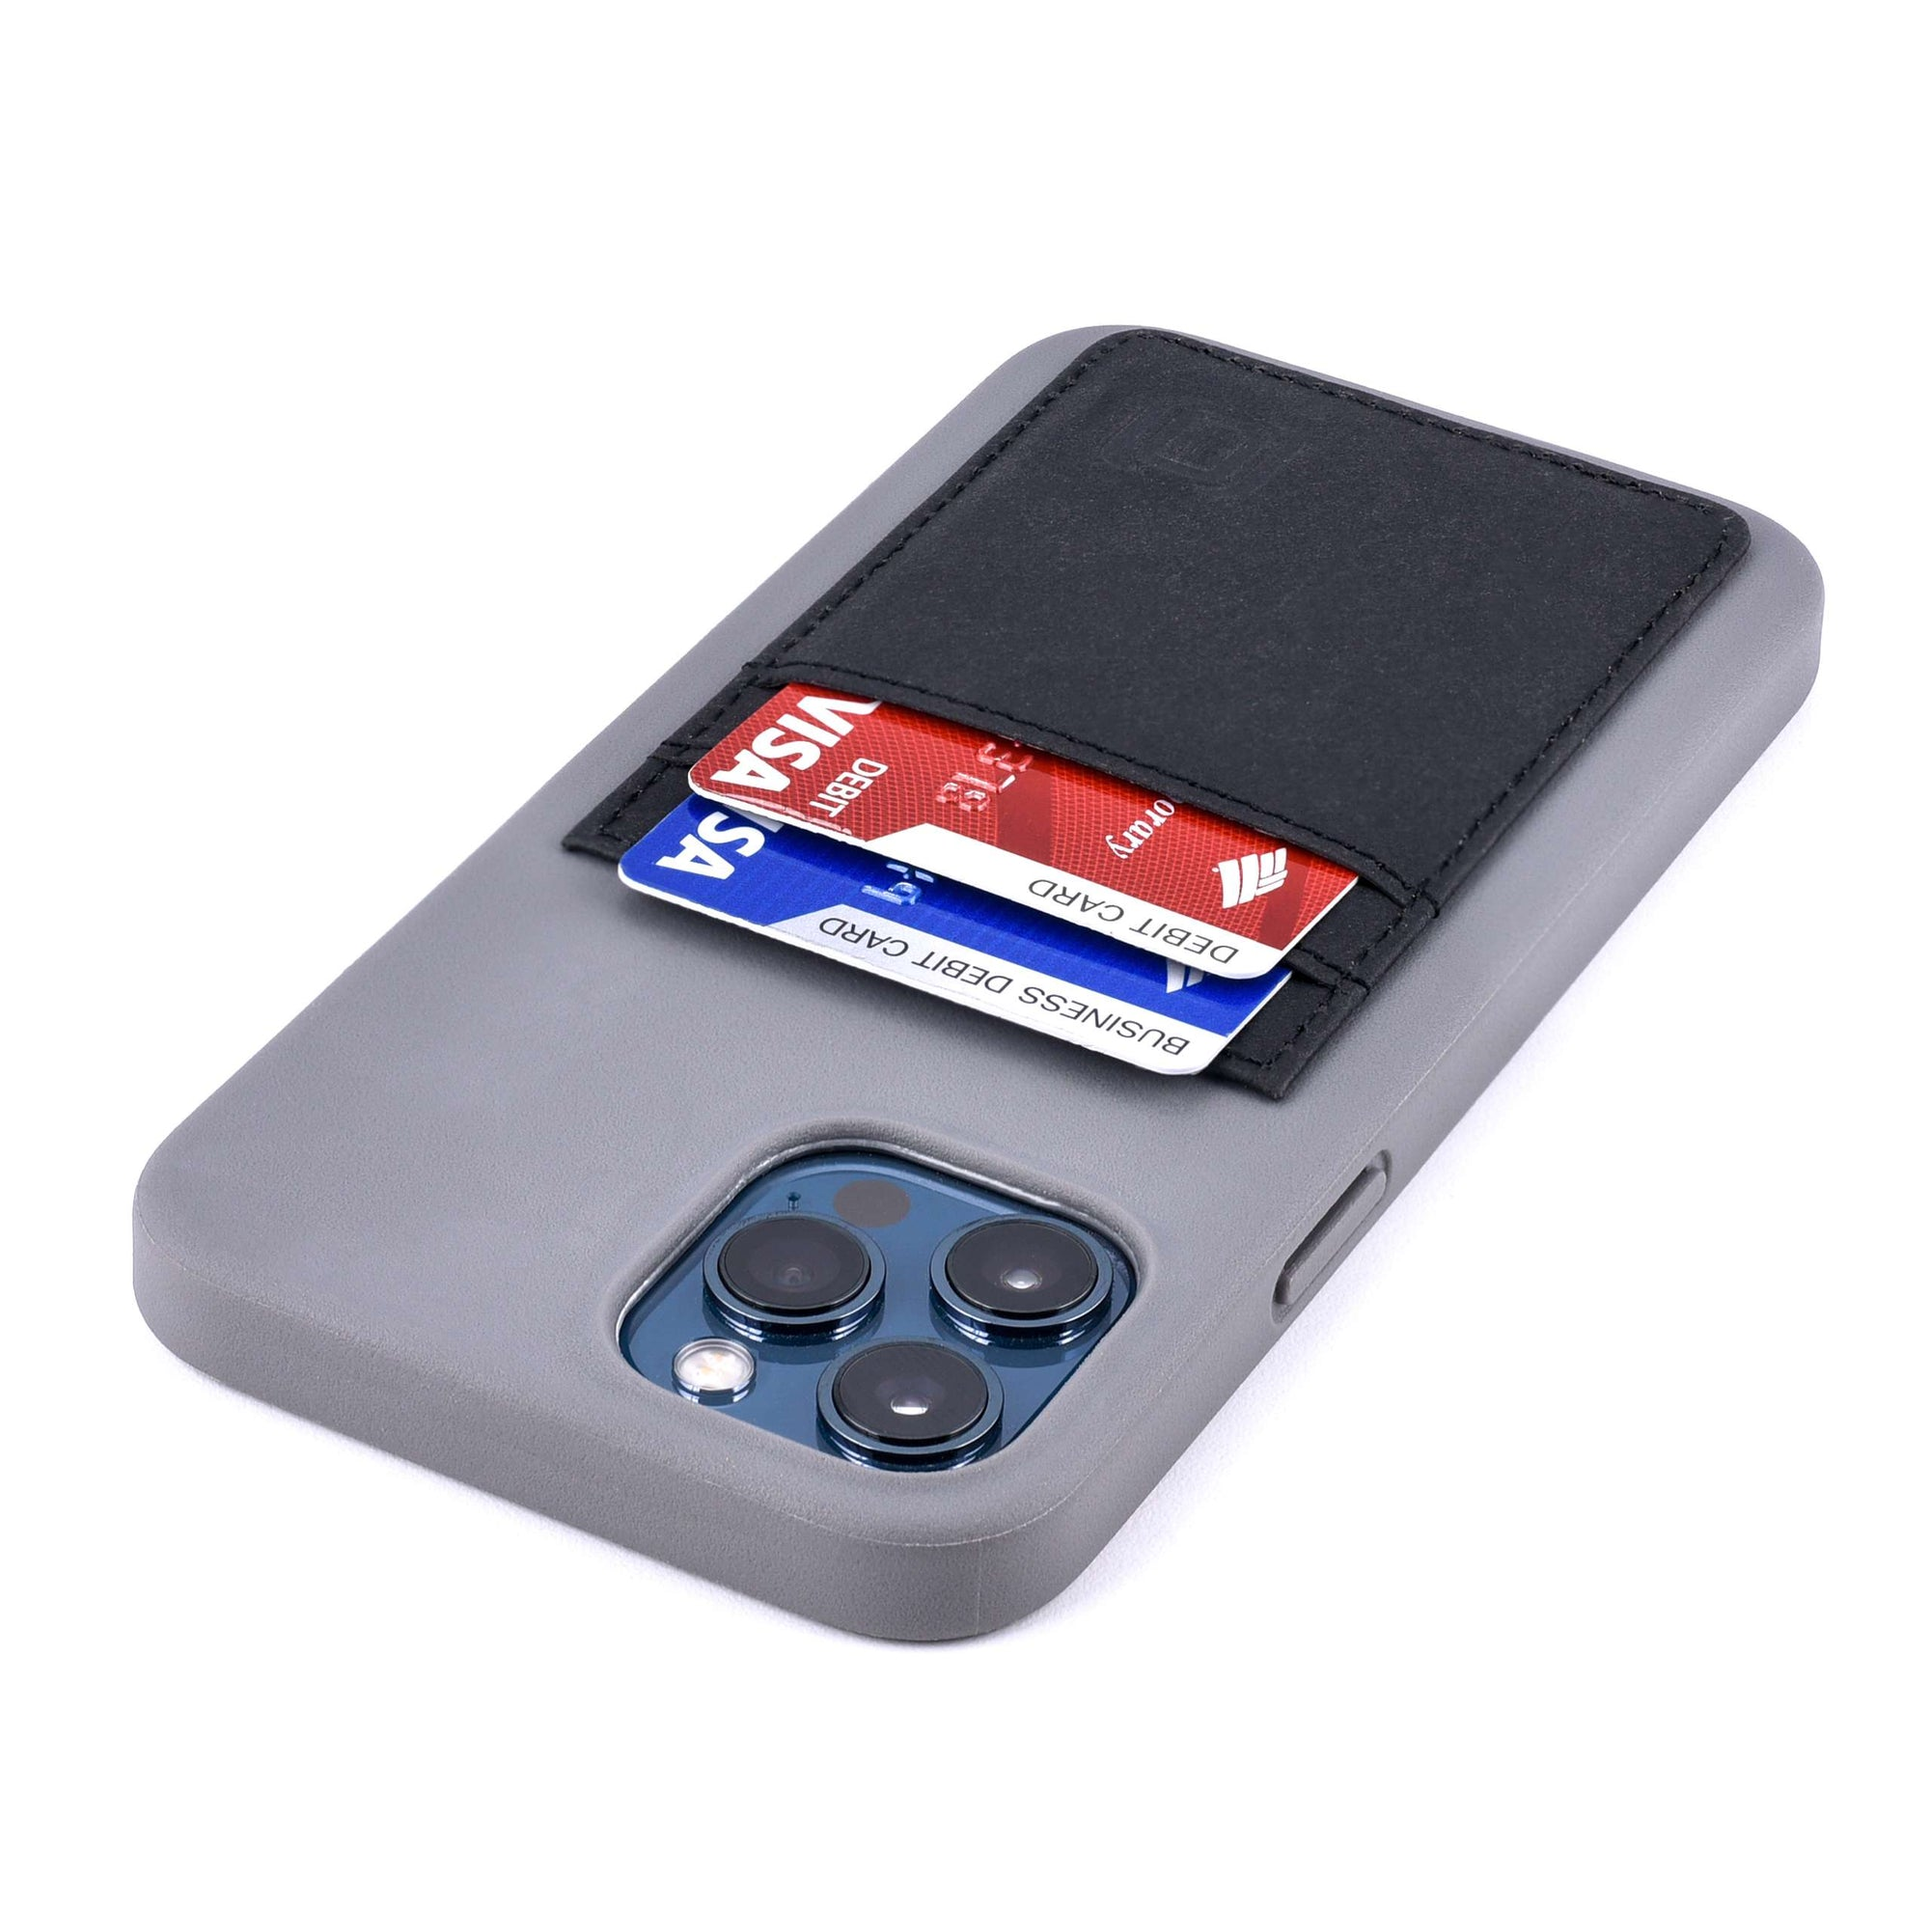 iPhone 12 Pro Max BIO M2B Wallet Case